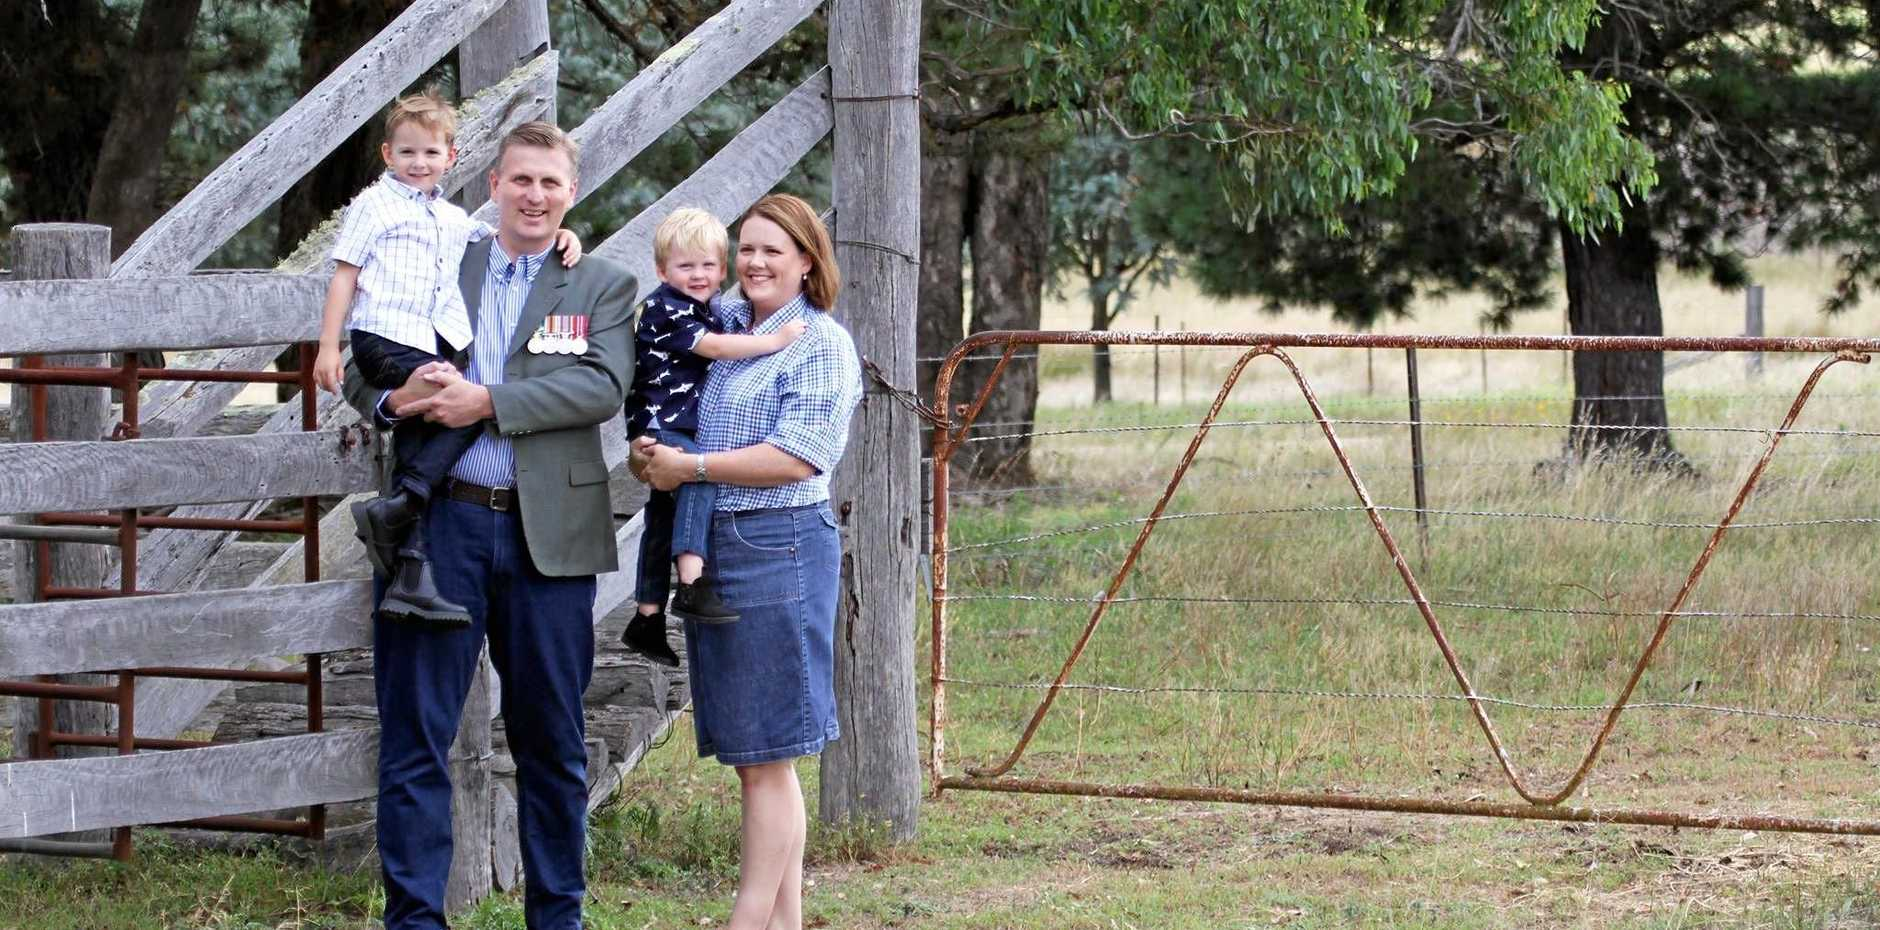 GIVE IT A GO: James Lister - with his wife Belinda and sons Jeremy, 6, and William, 3 - has been named the LNP candidate for the Southern Downs.